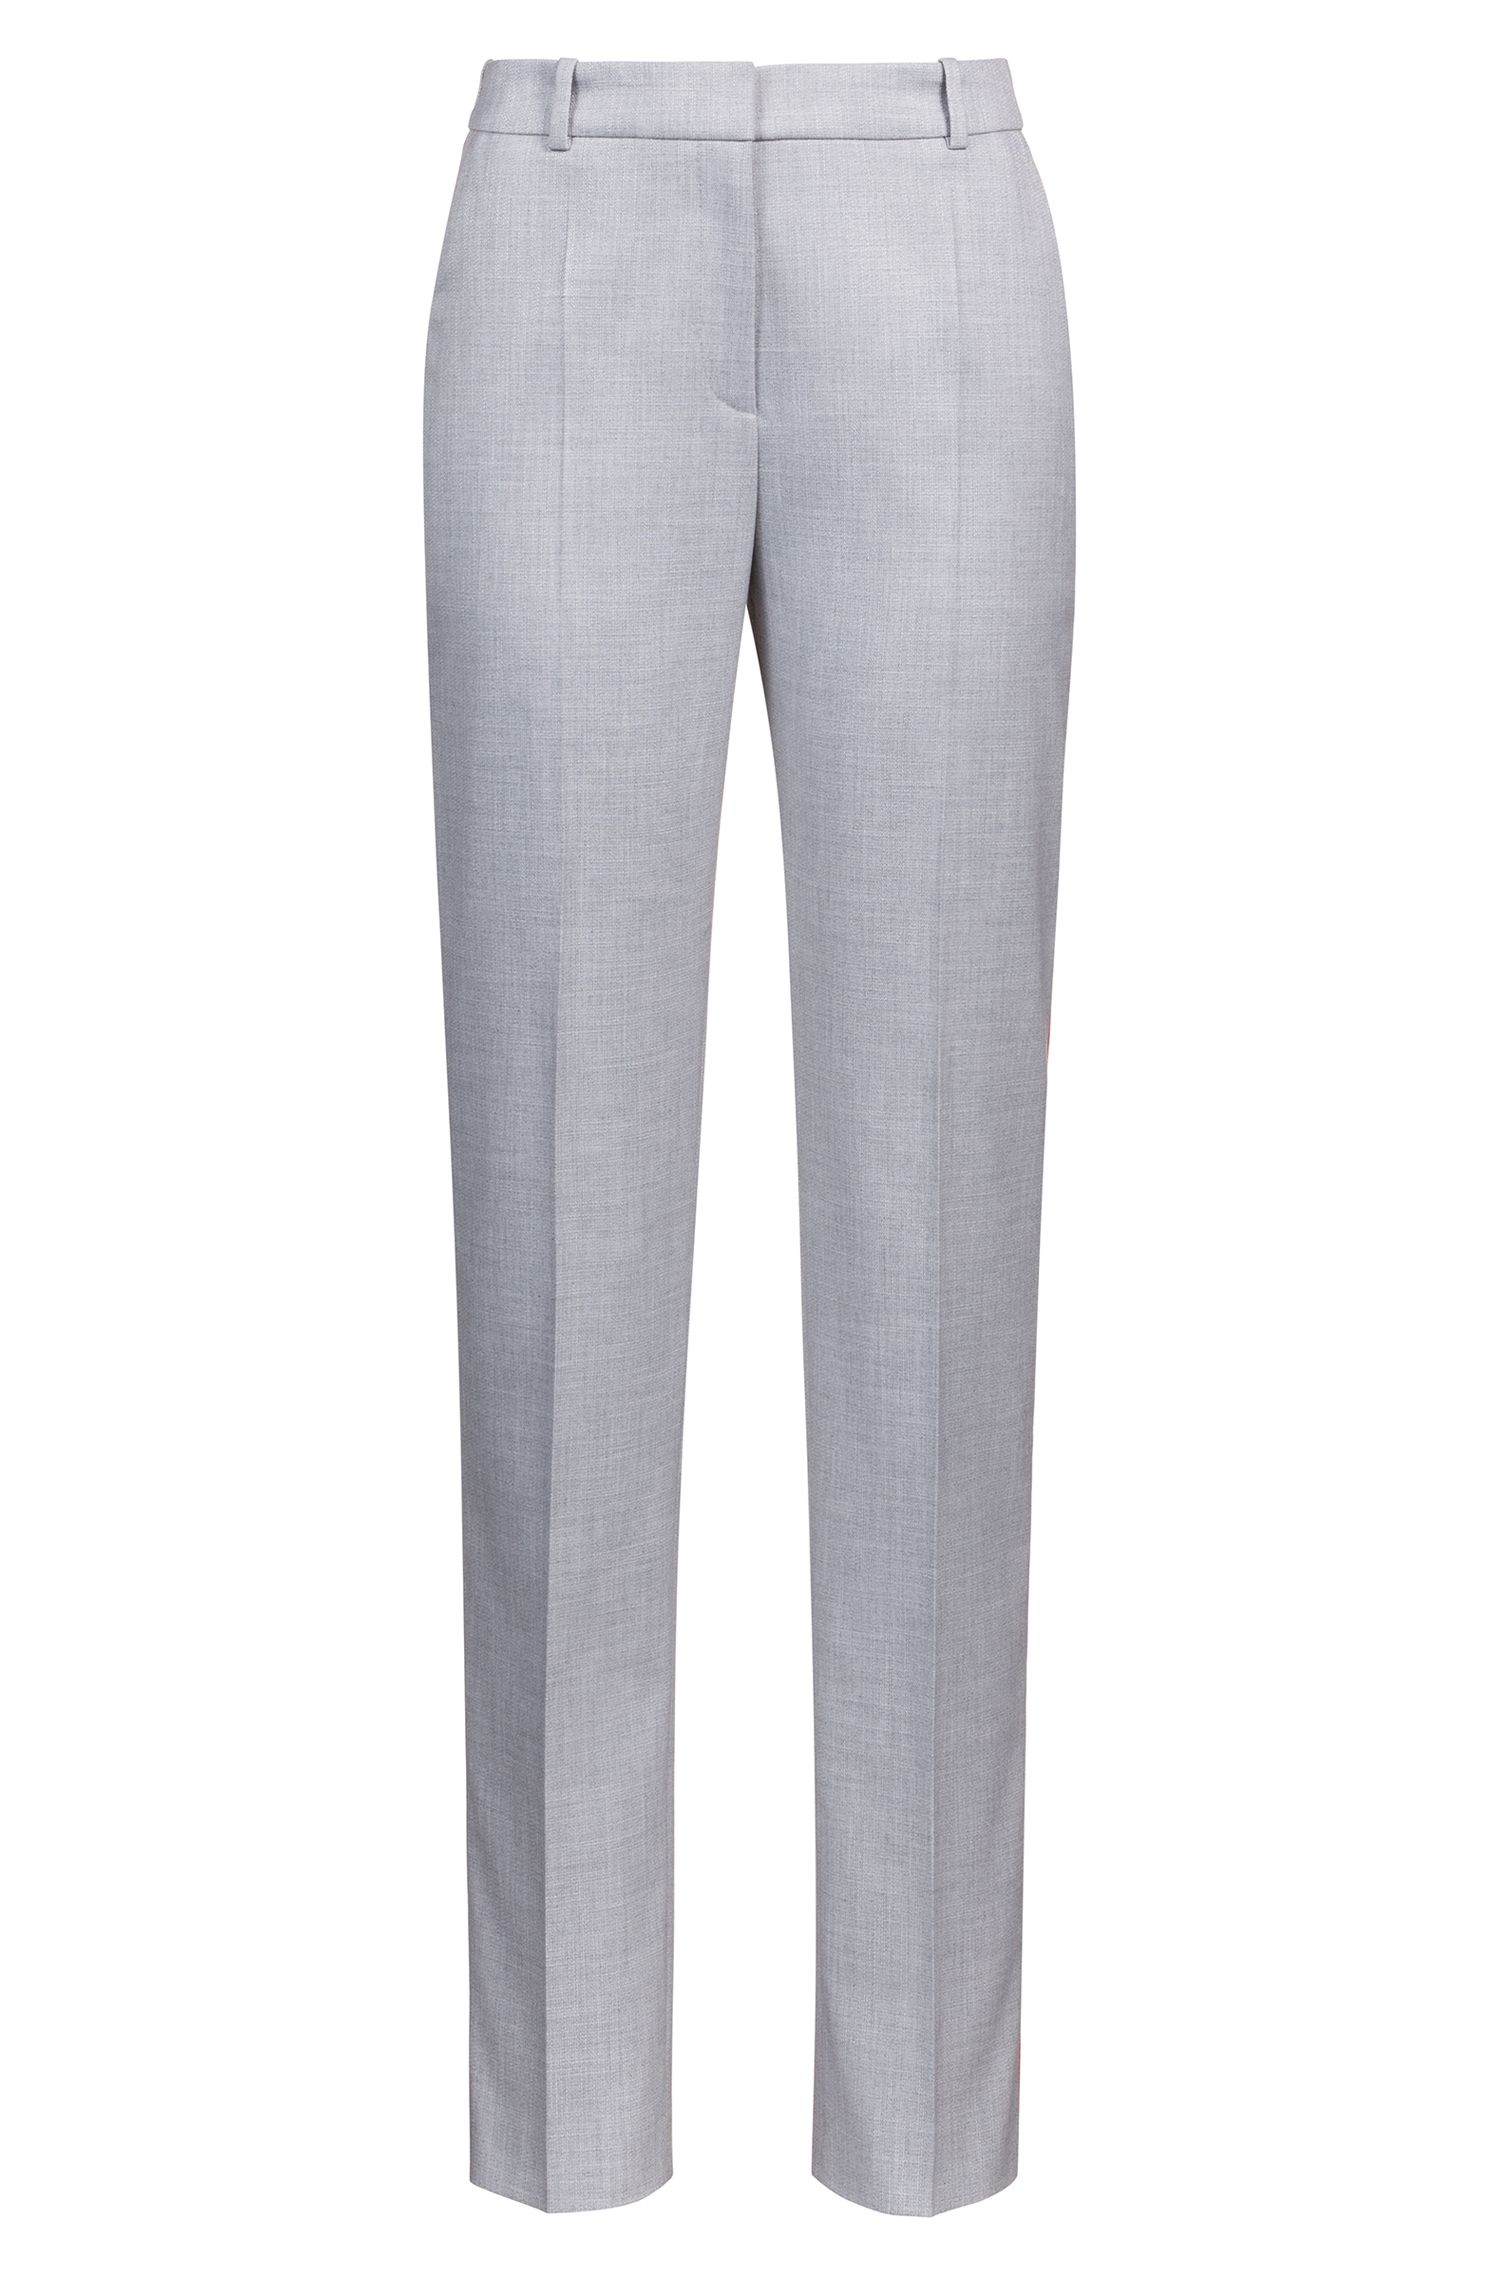 Cropped cigarette trousers with contrast side-seam tape, Patterned